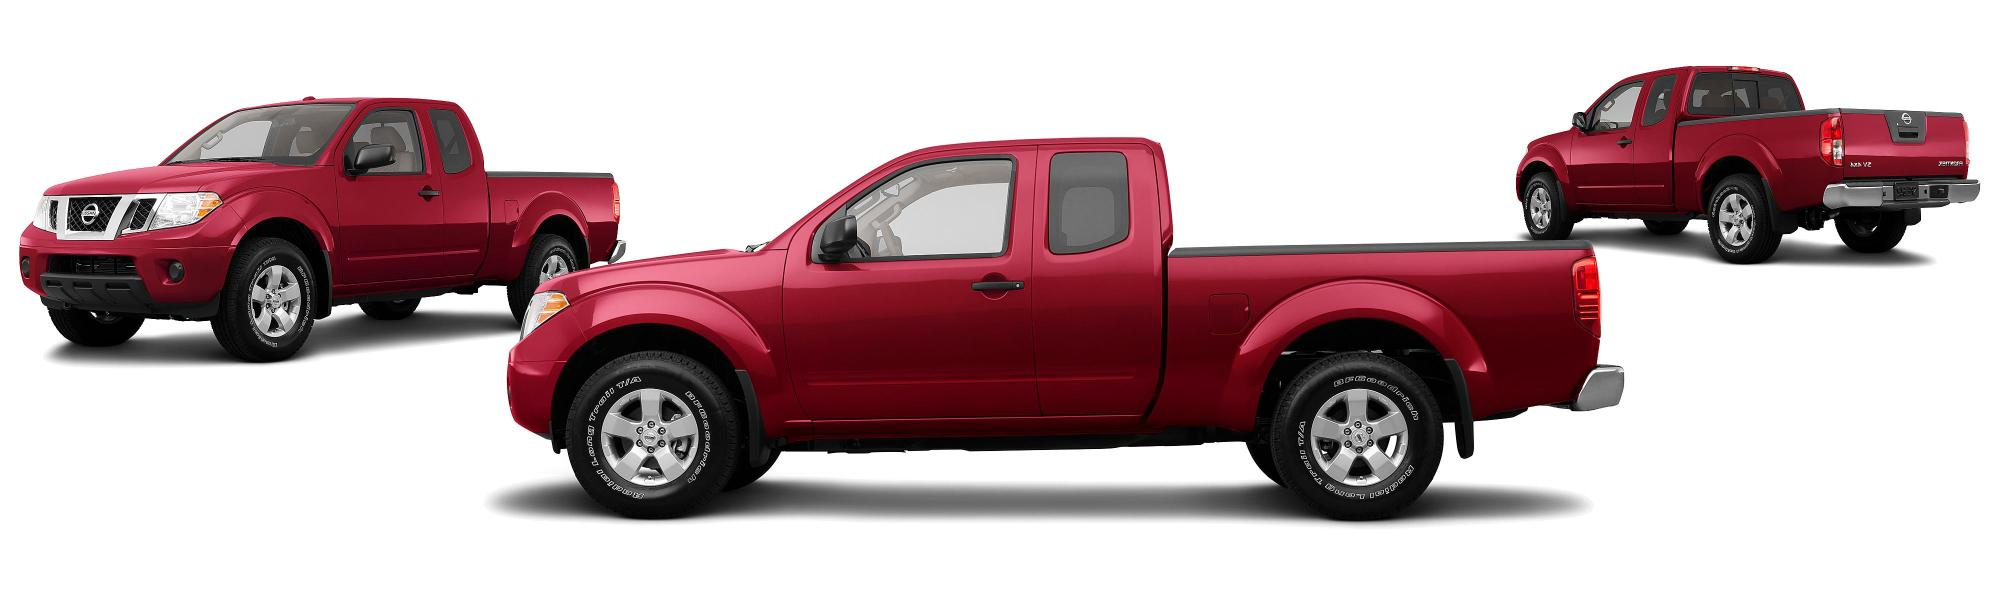 hight resolution of 2012 nissan frontier 4x2 sv 4dr king cab pickup 5a research groovecar